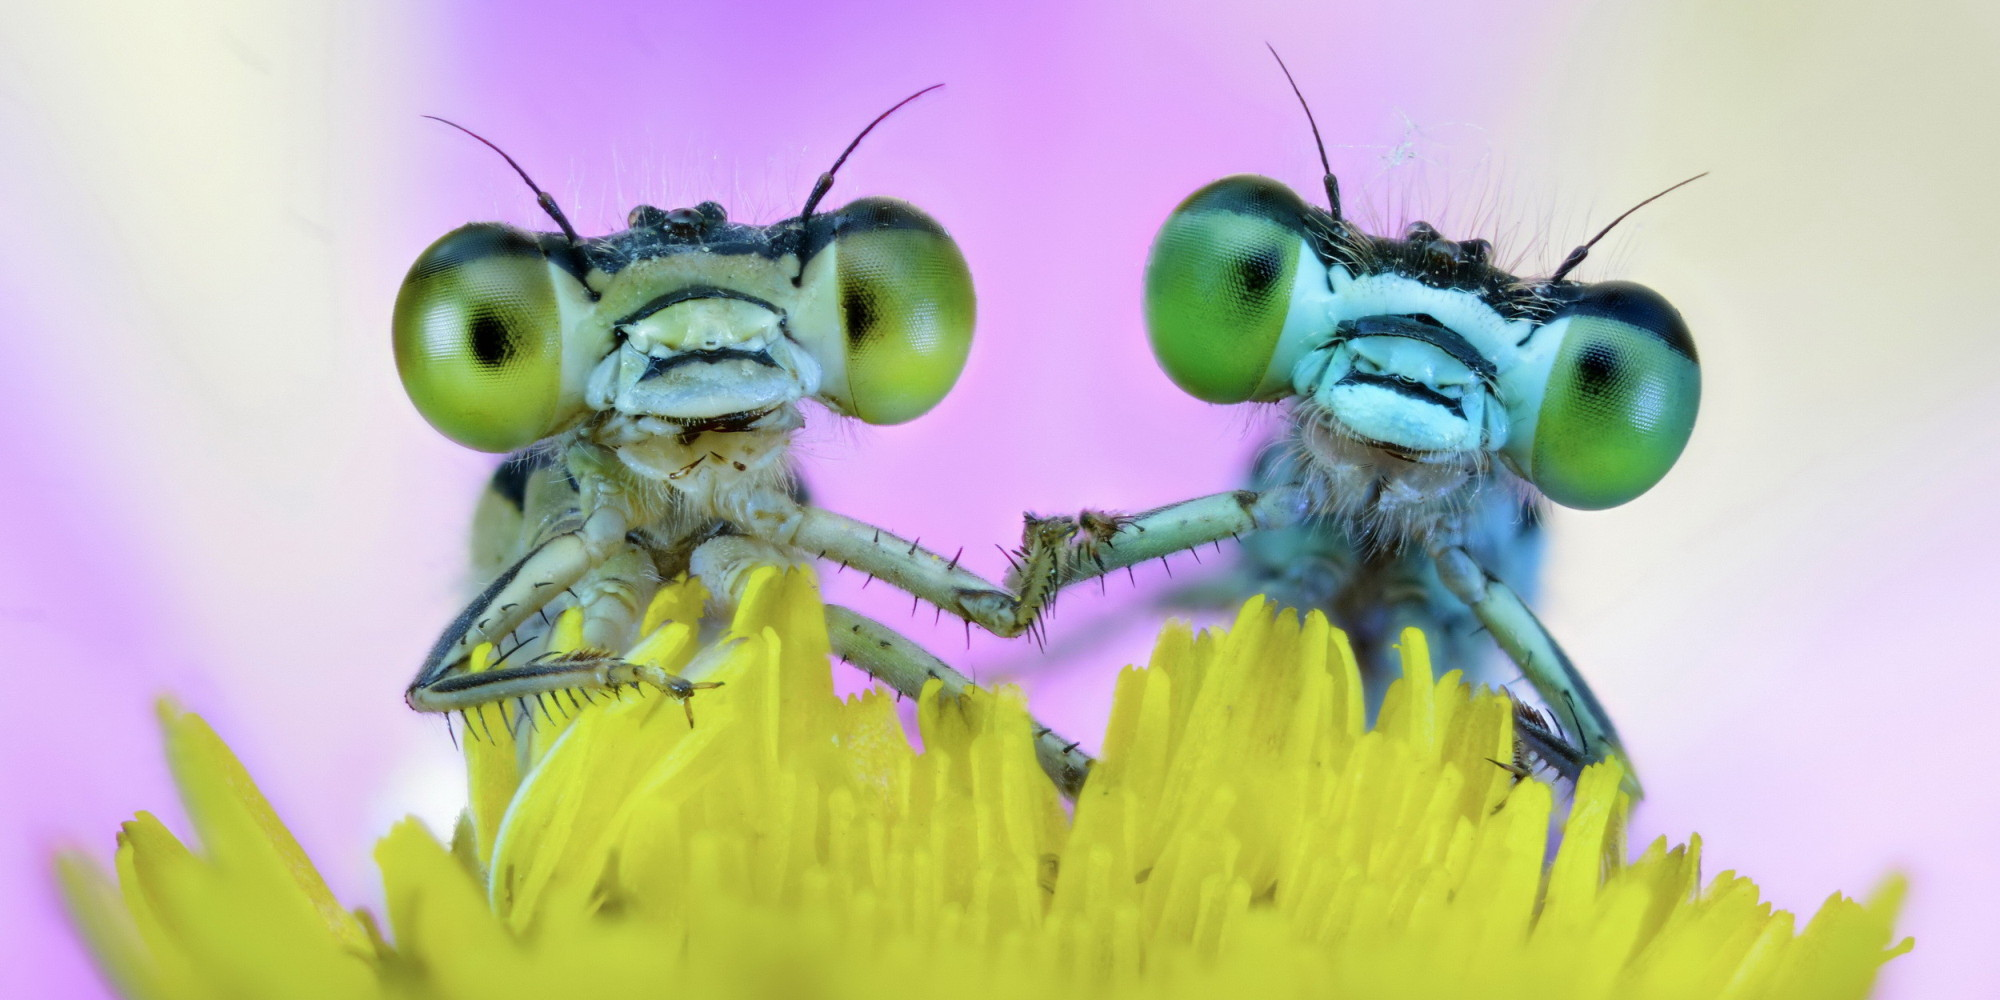 o-CUTE-INSECTS-facebook.jpg (2000×1000)